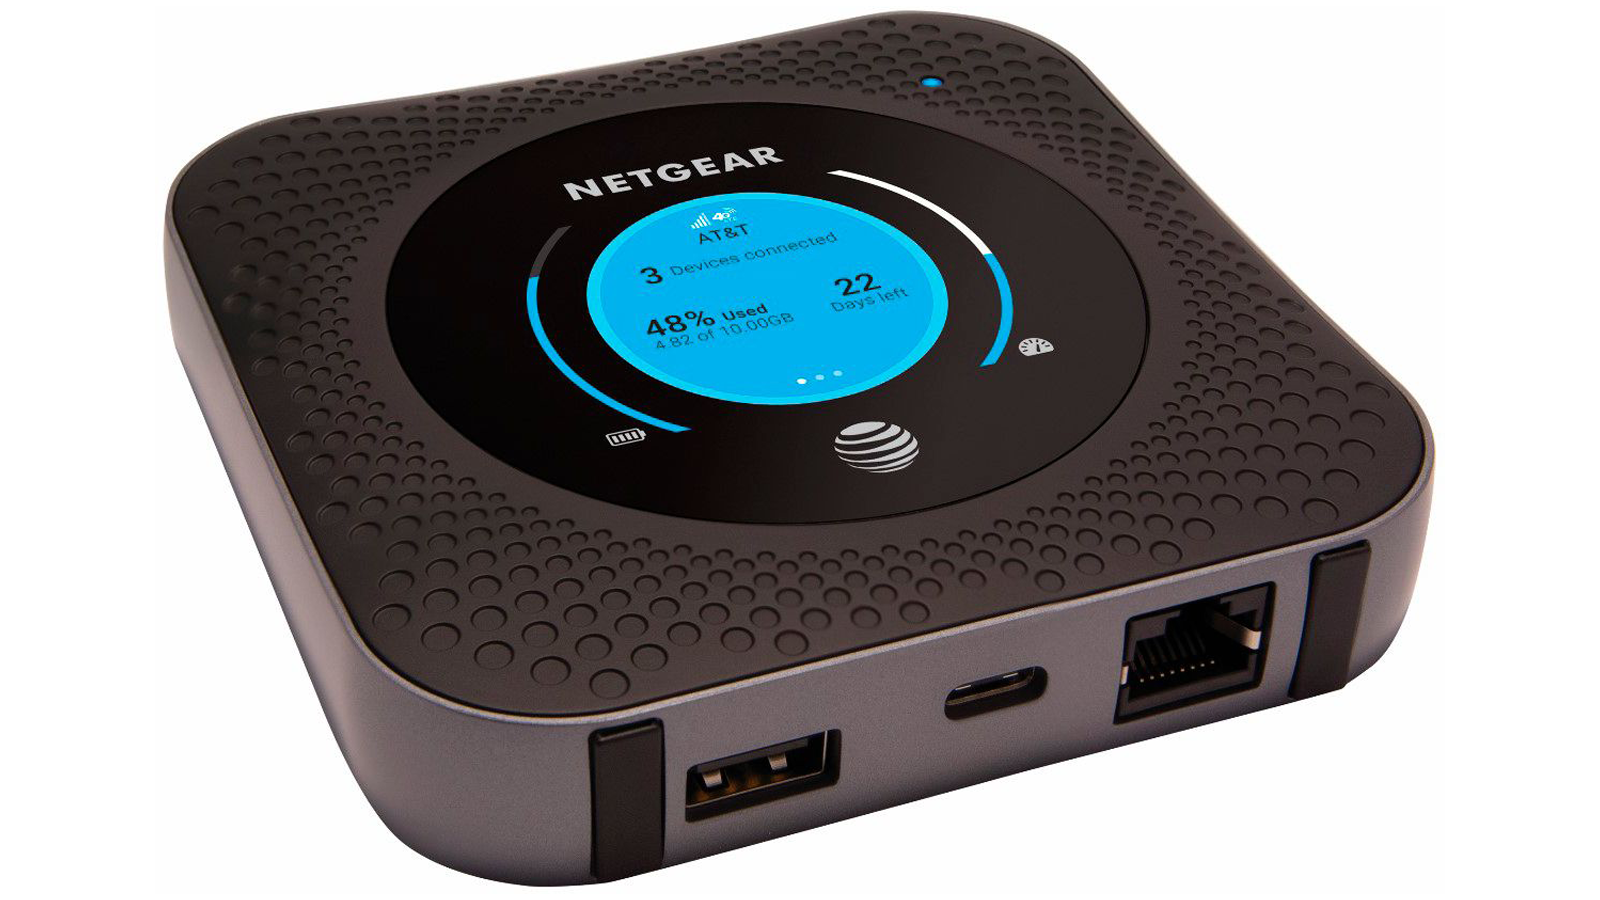 AT&T NETGEAR Nighthawk LTE Mobile Hotspot Router device with 1.4-inch display showing stats and battery power